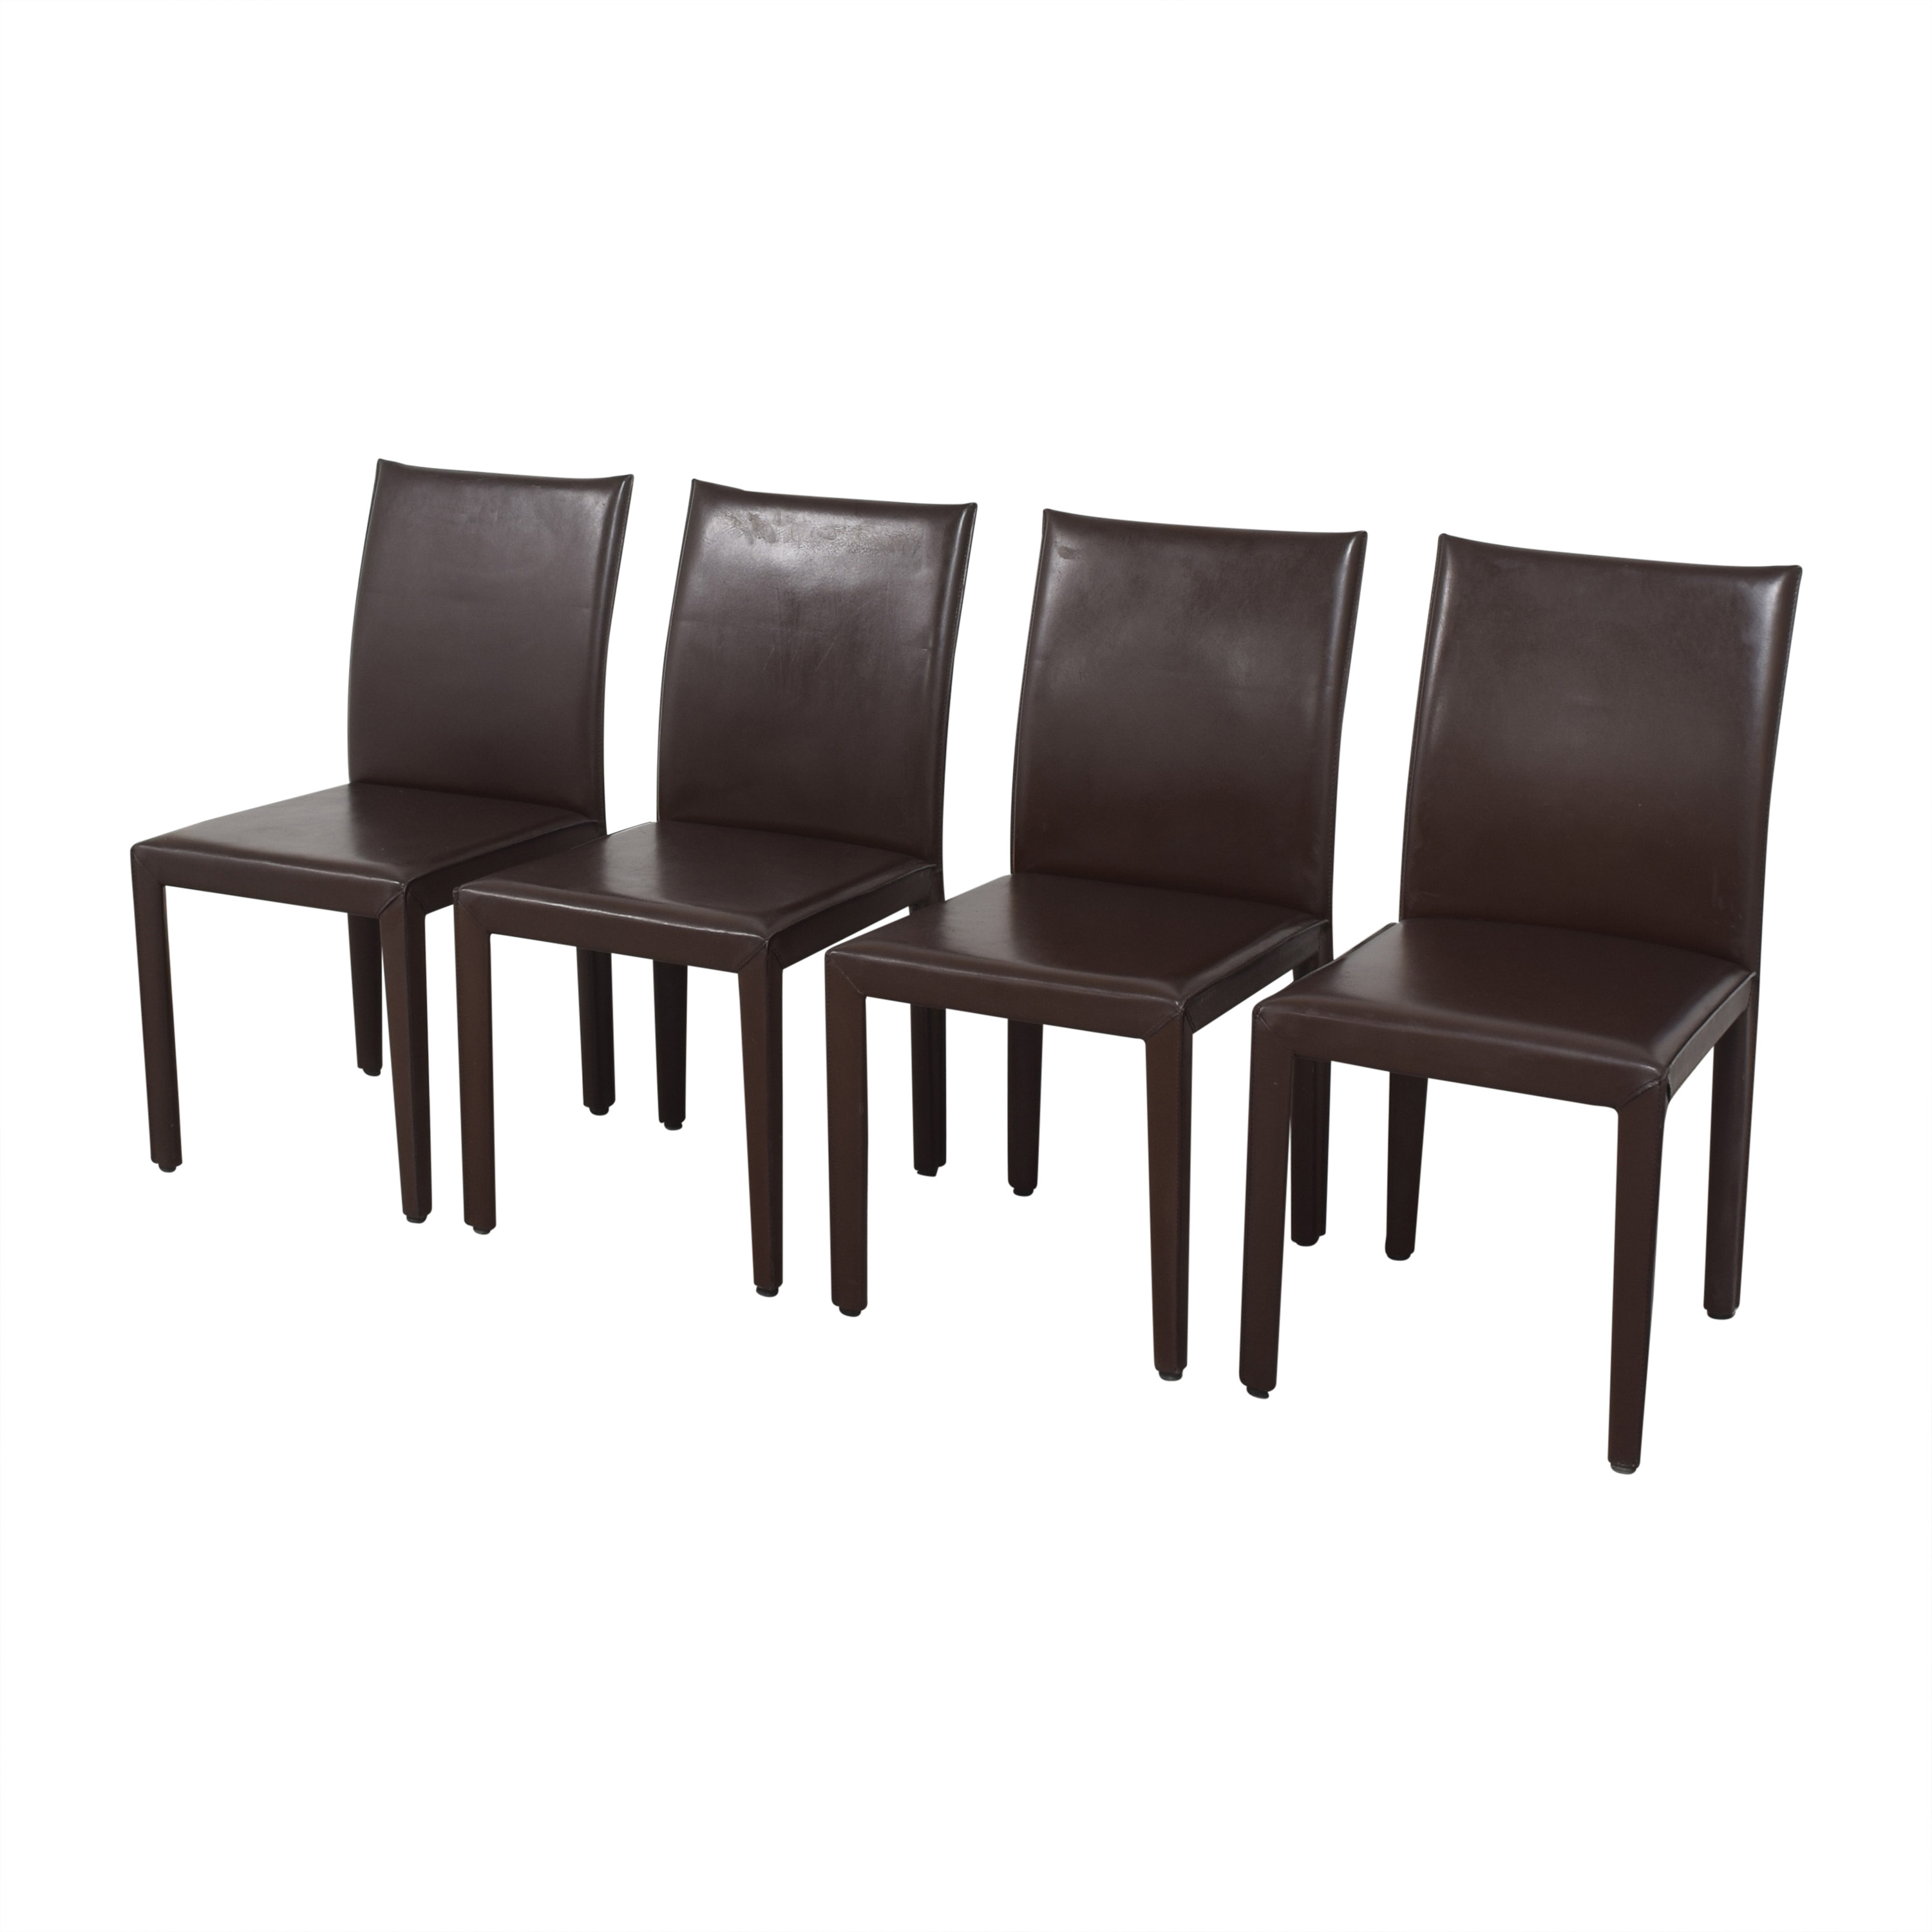 Crate & Barrel Crate & Barrel Folio Dining Chairs by Maria Yee